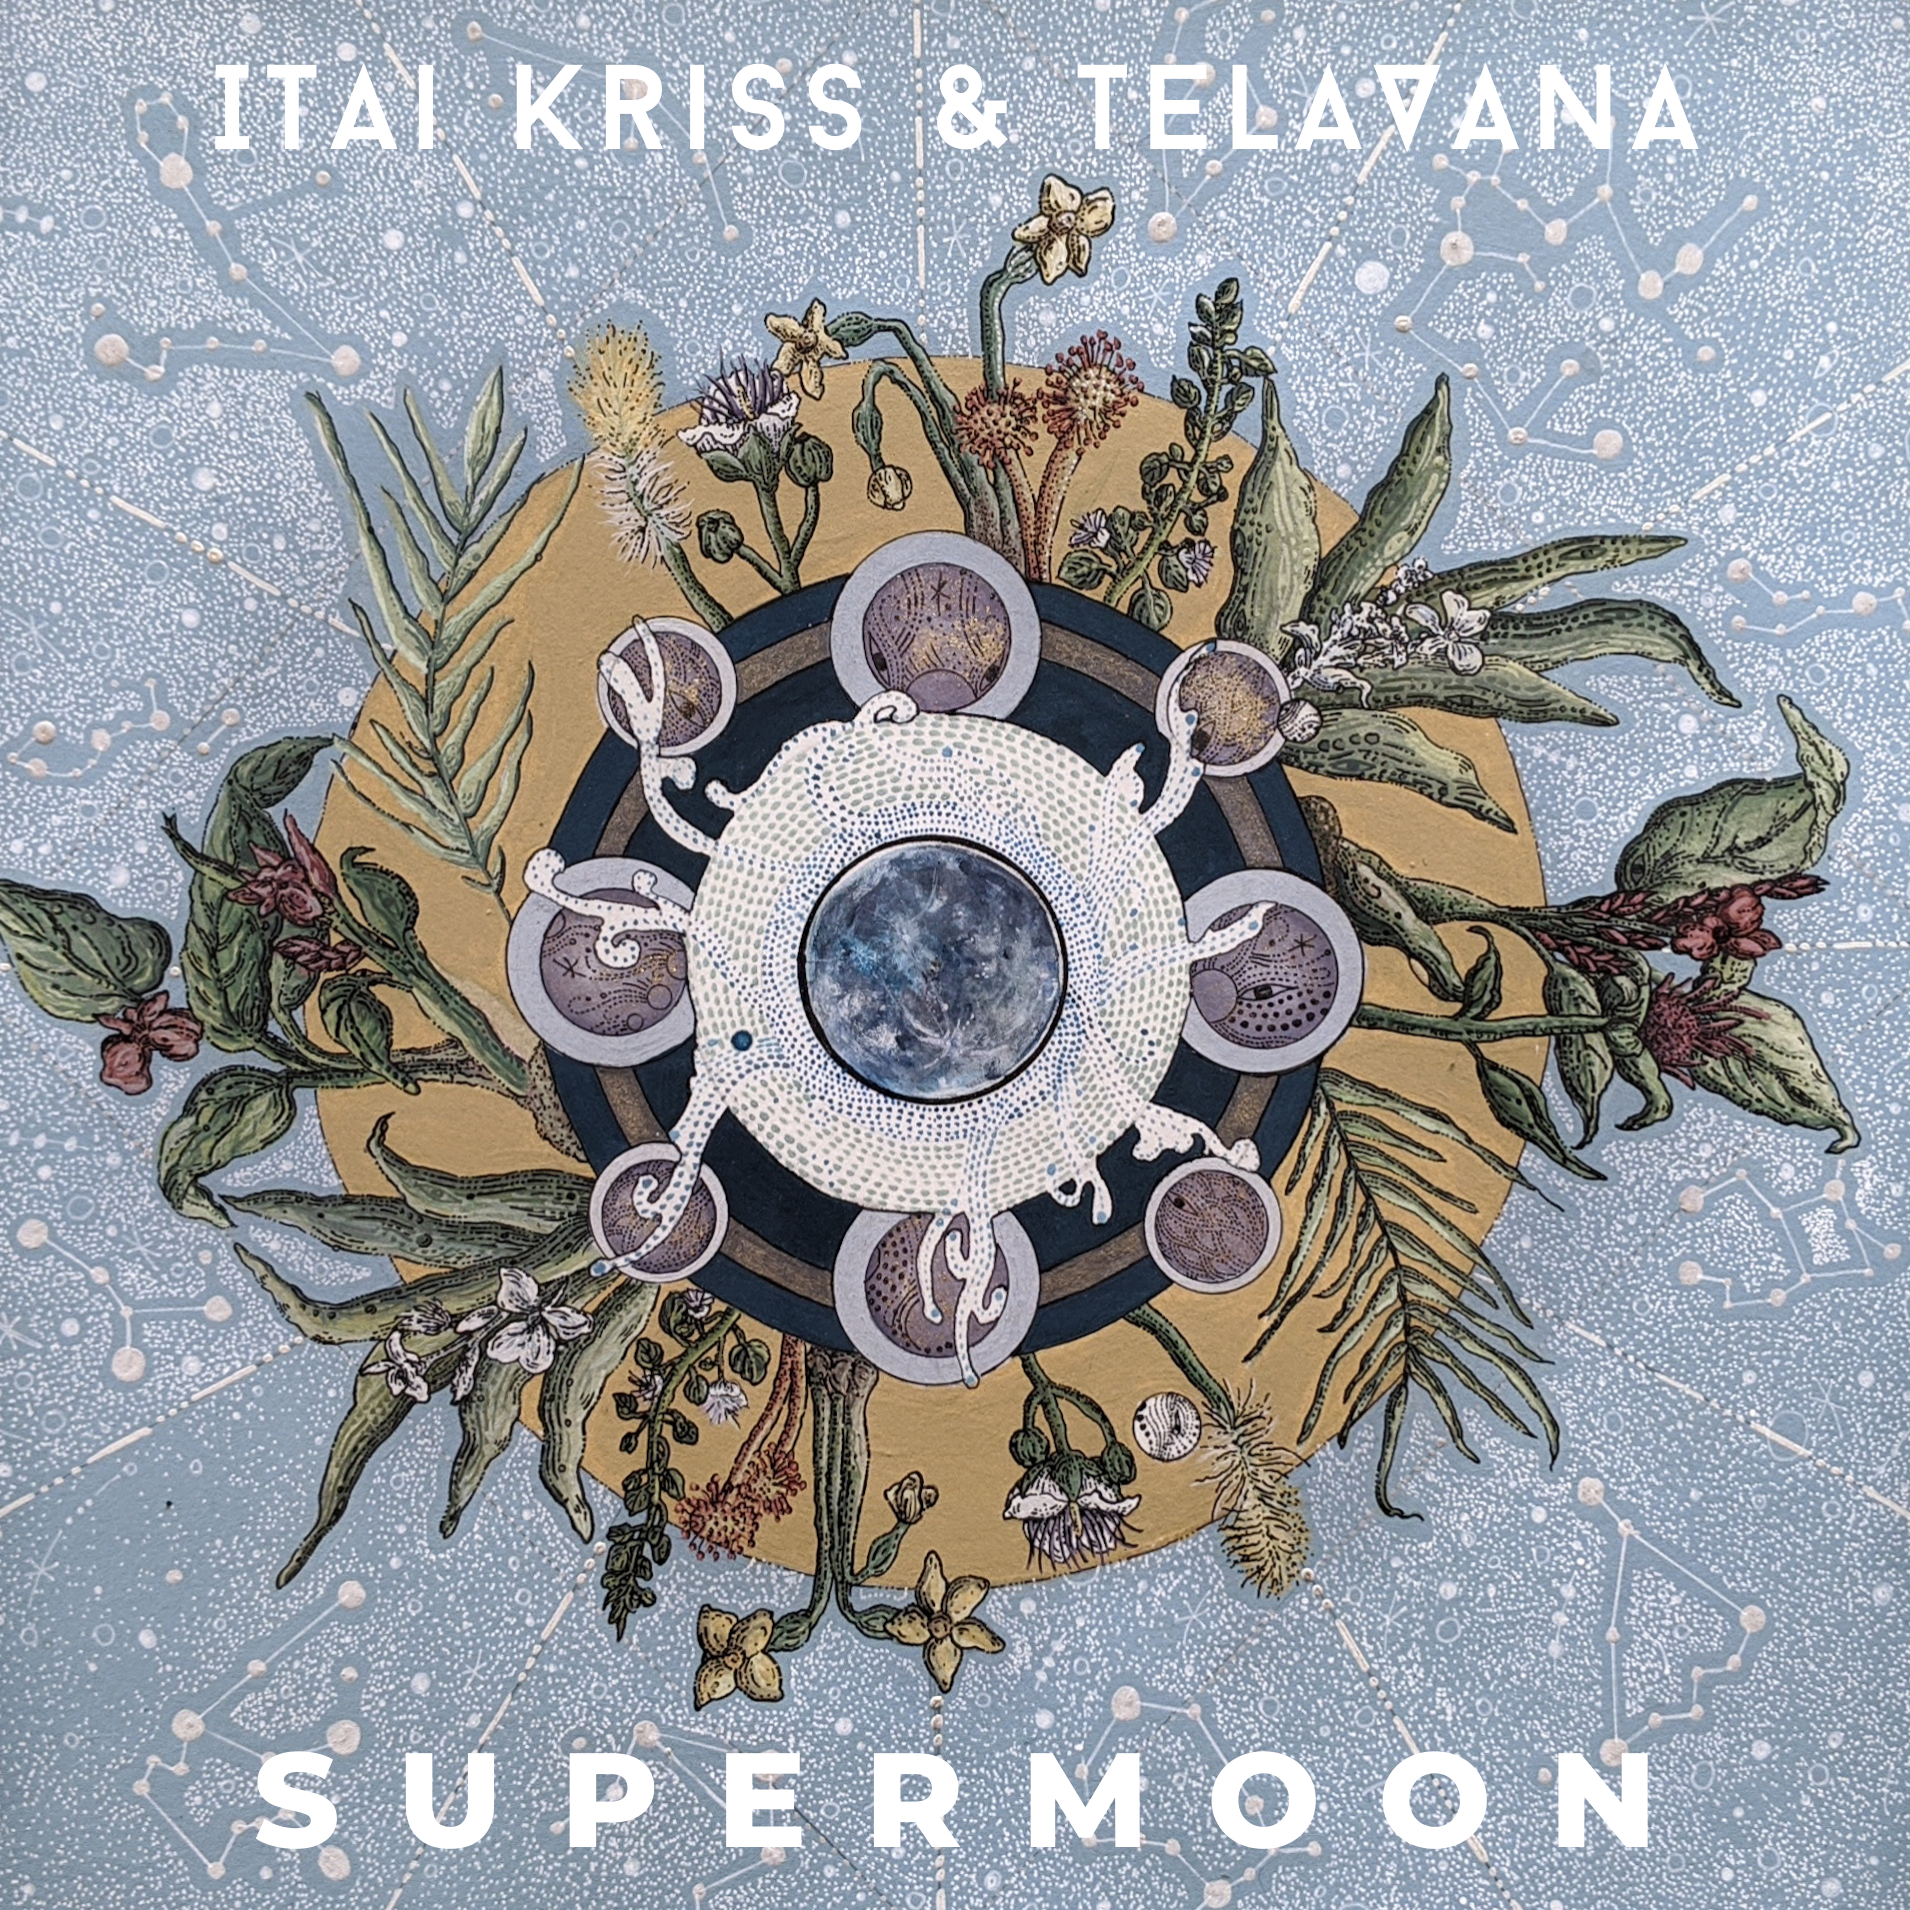 NEW RELEASE: Itai Kriss & Telavana's SUPERMOON is out October 8, 2021